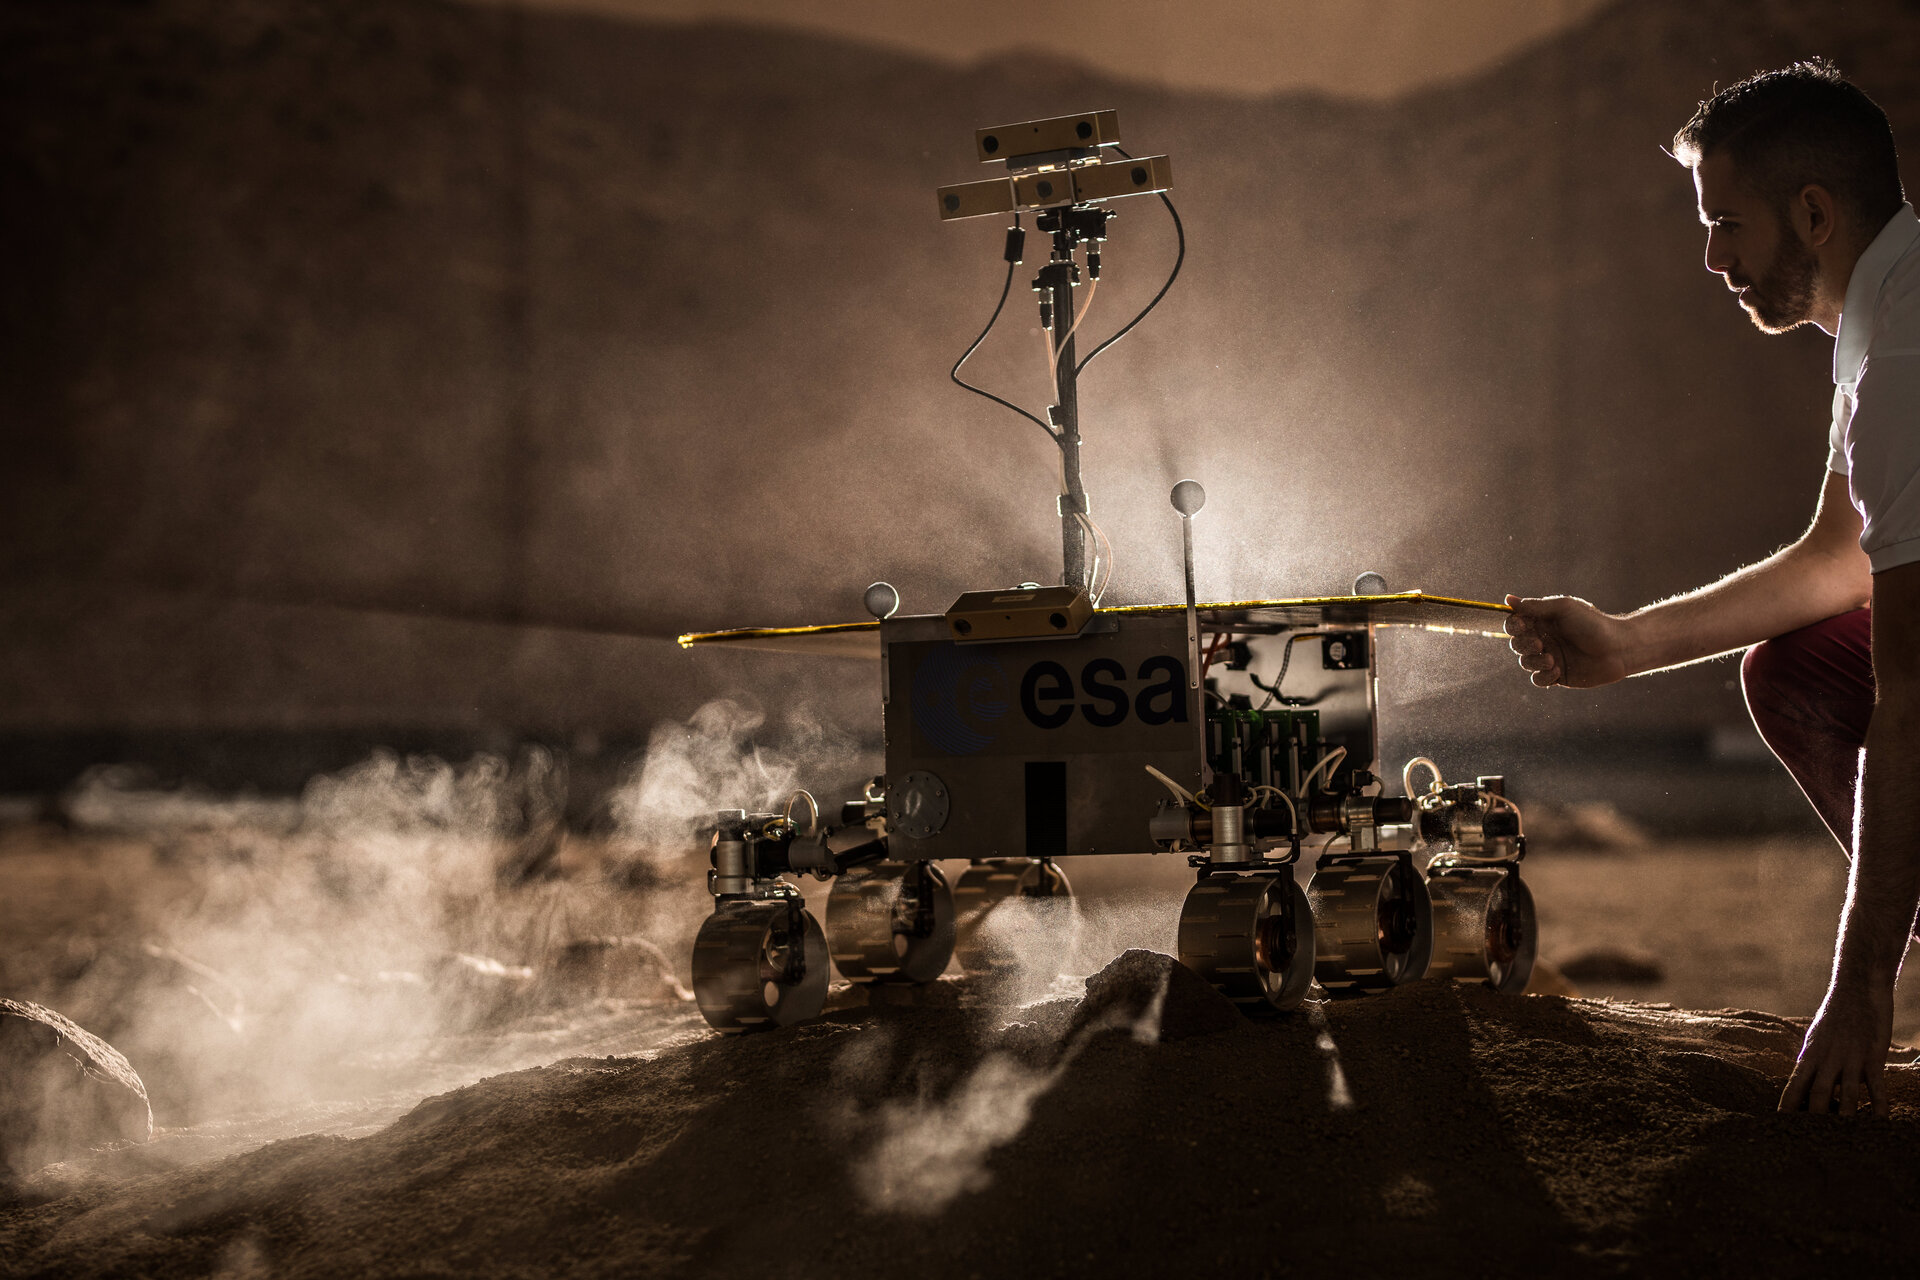 Martian moves under control on Earth